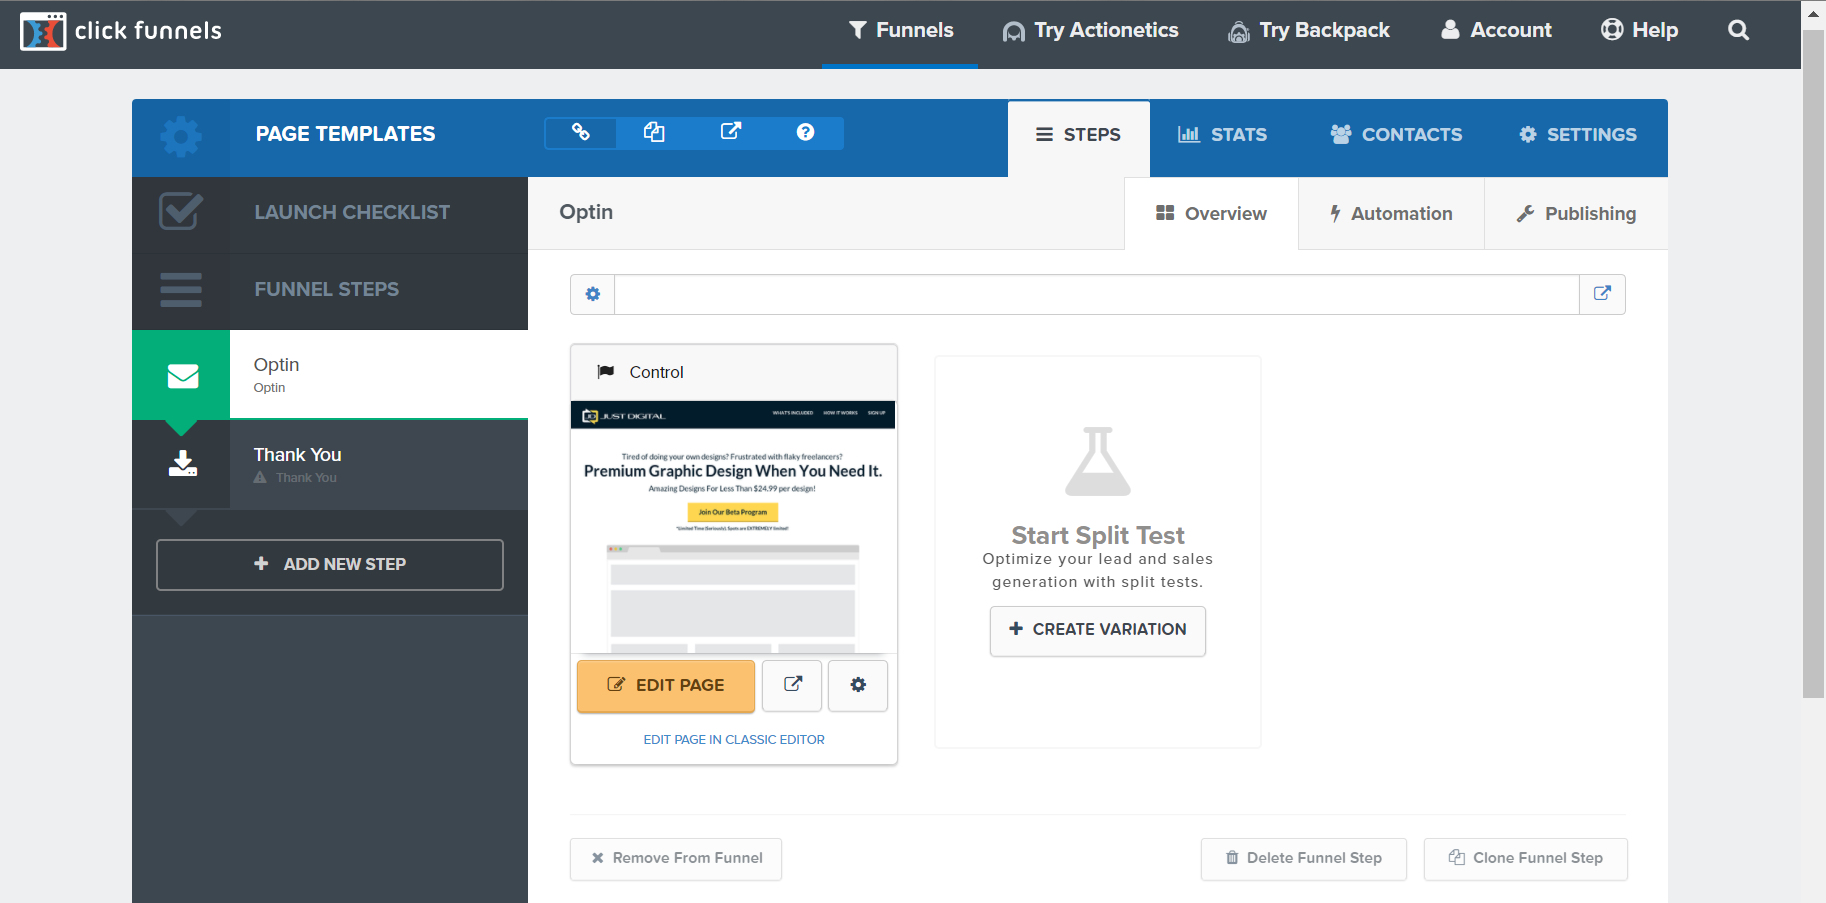 Where Is The Redirect Override In Clickfunnels Funnel